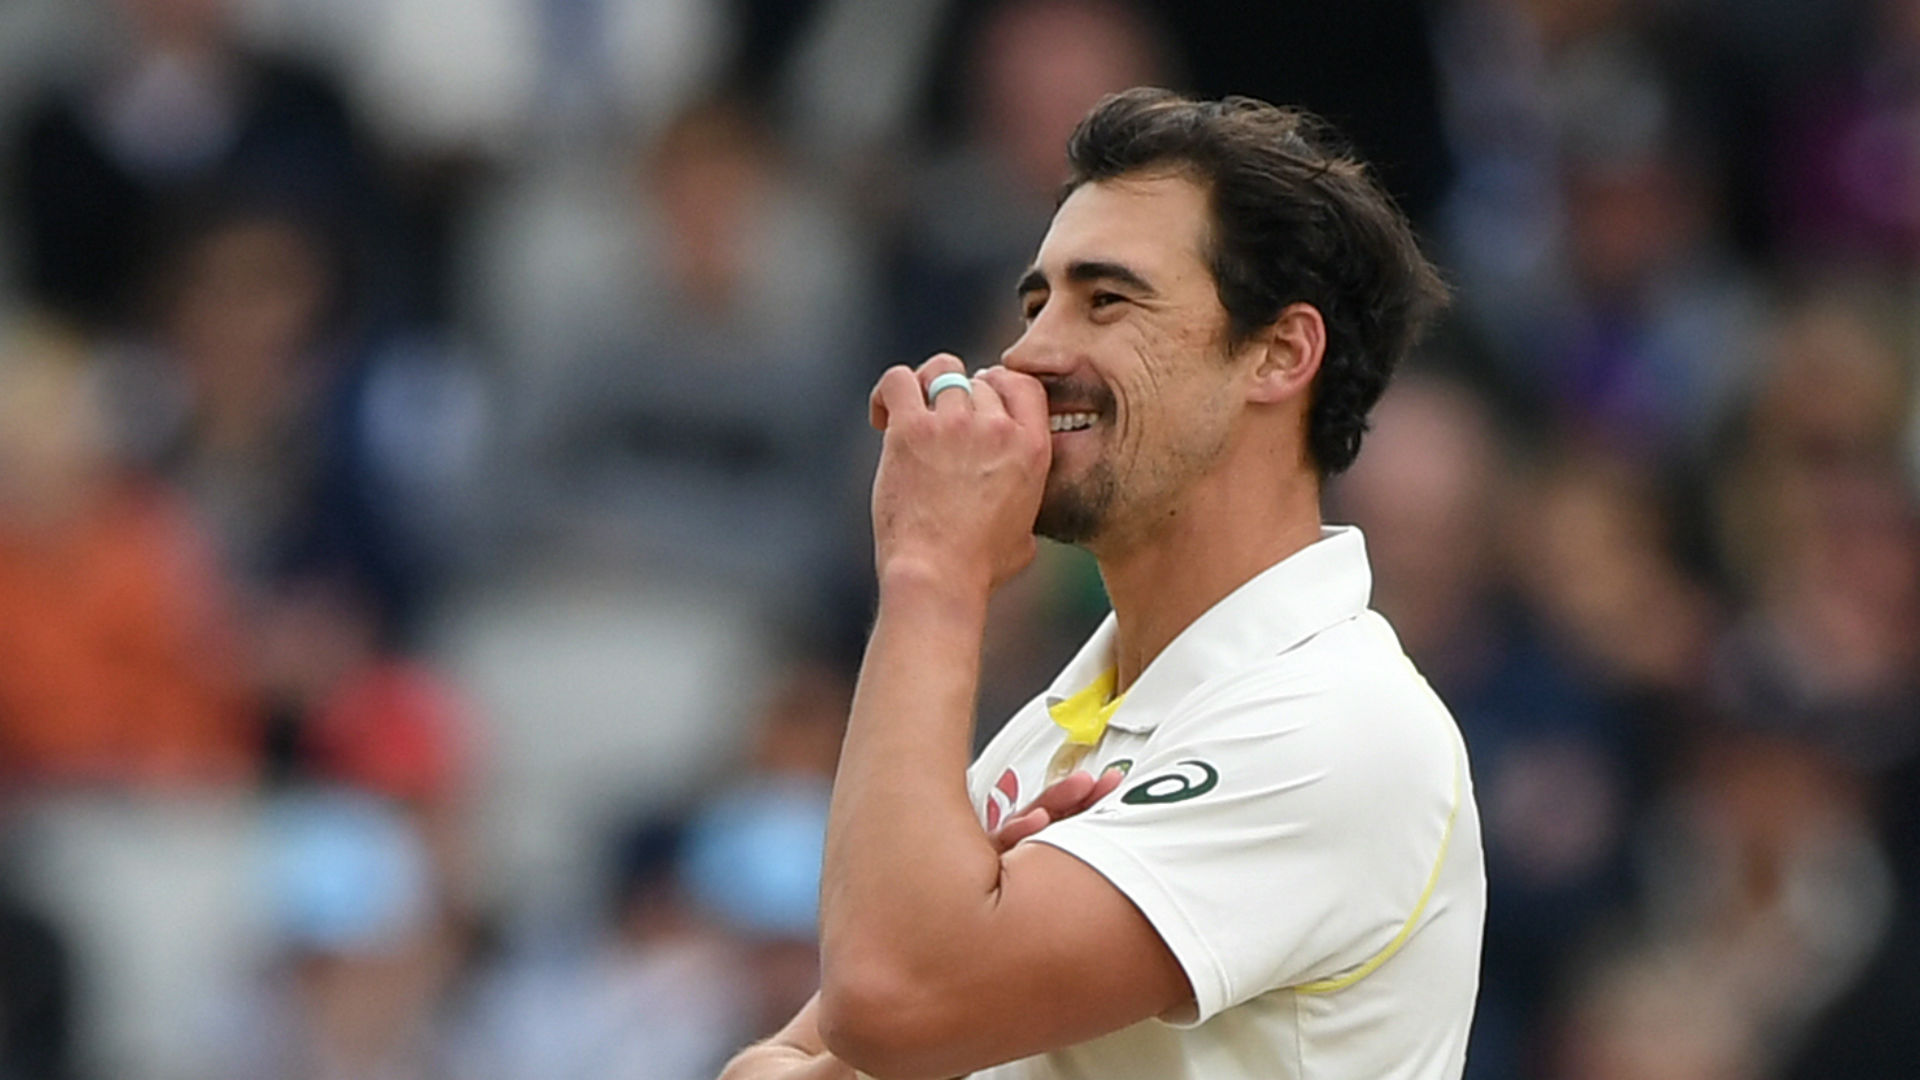 Ashes 2019: Mitchell Starc misses out as Australia summon Peter Siddle for fifth Test